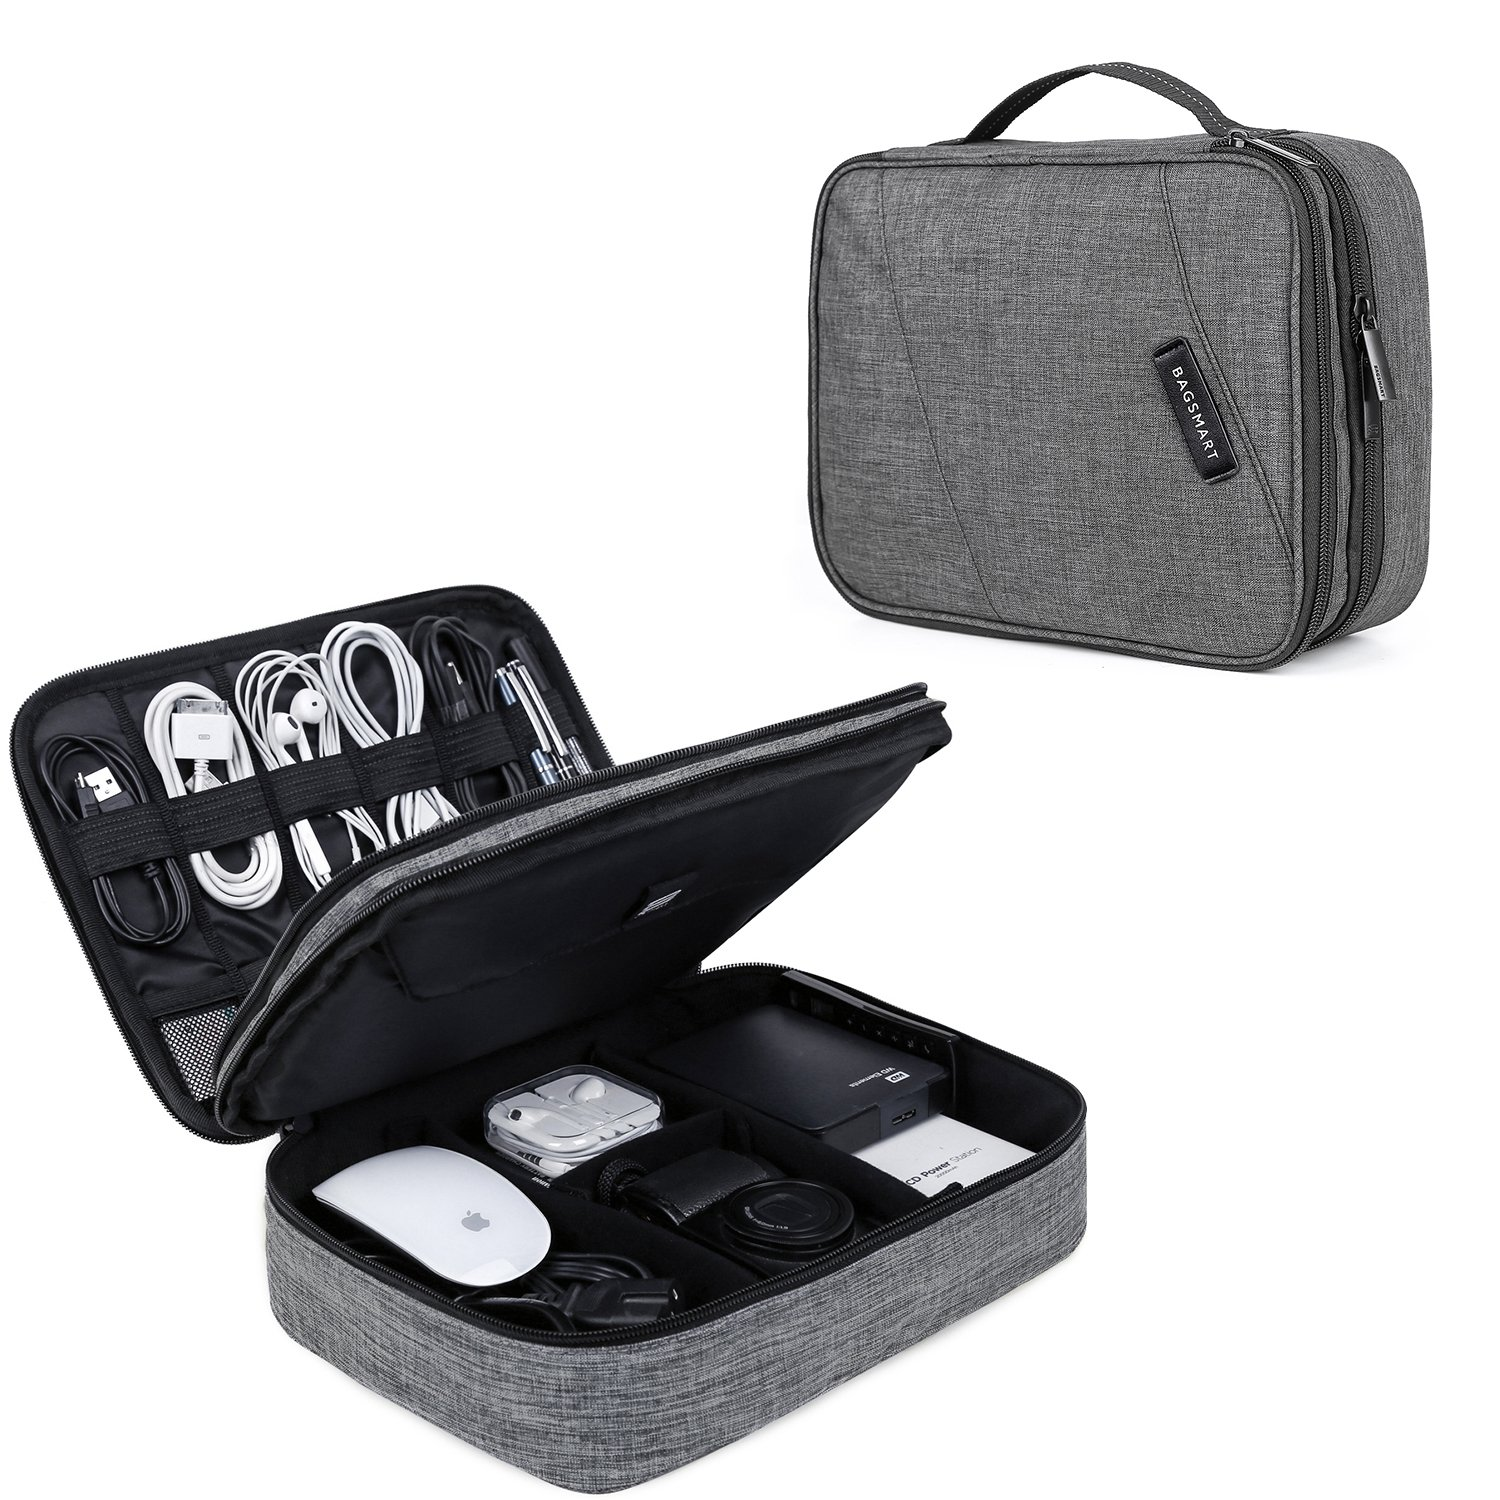 BAGSMART Double Layer Travel Universal Cable Organizer Cases Electronics Accessories Storage Bag 10.5'' iPad Pro, iPad air, Charger, Kindle, Grey